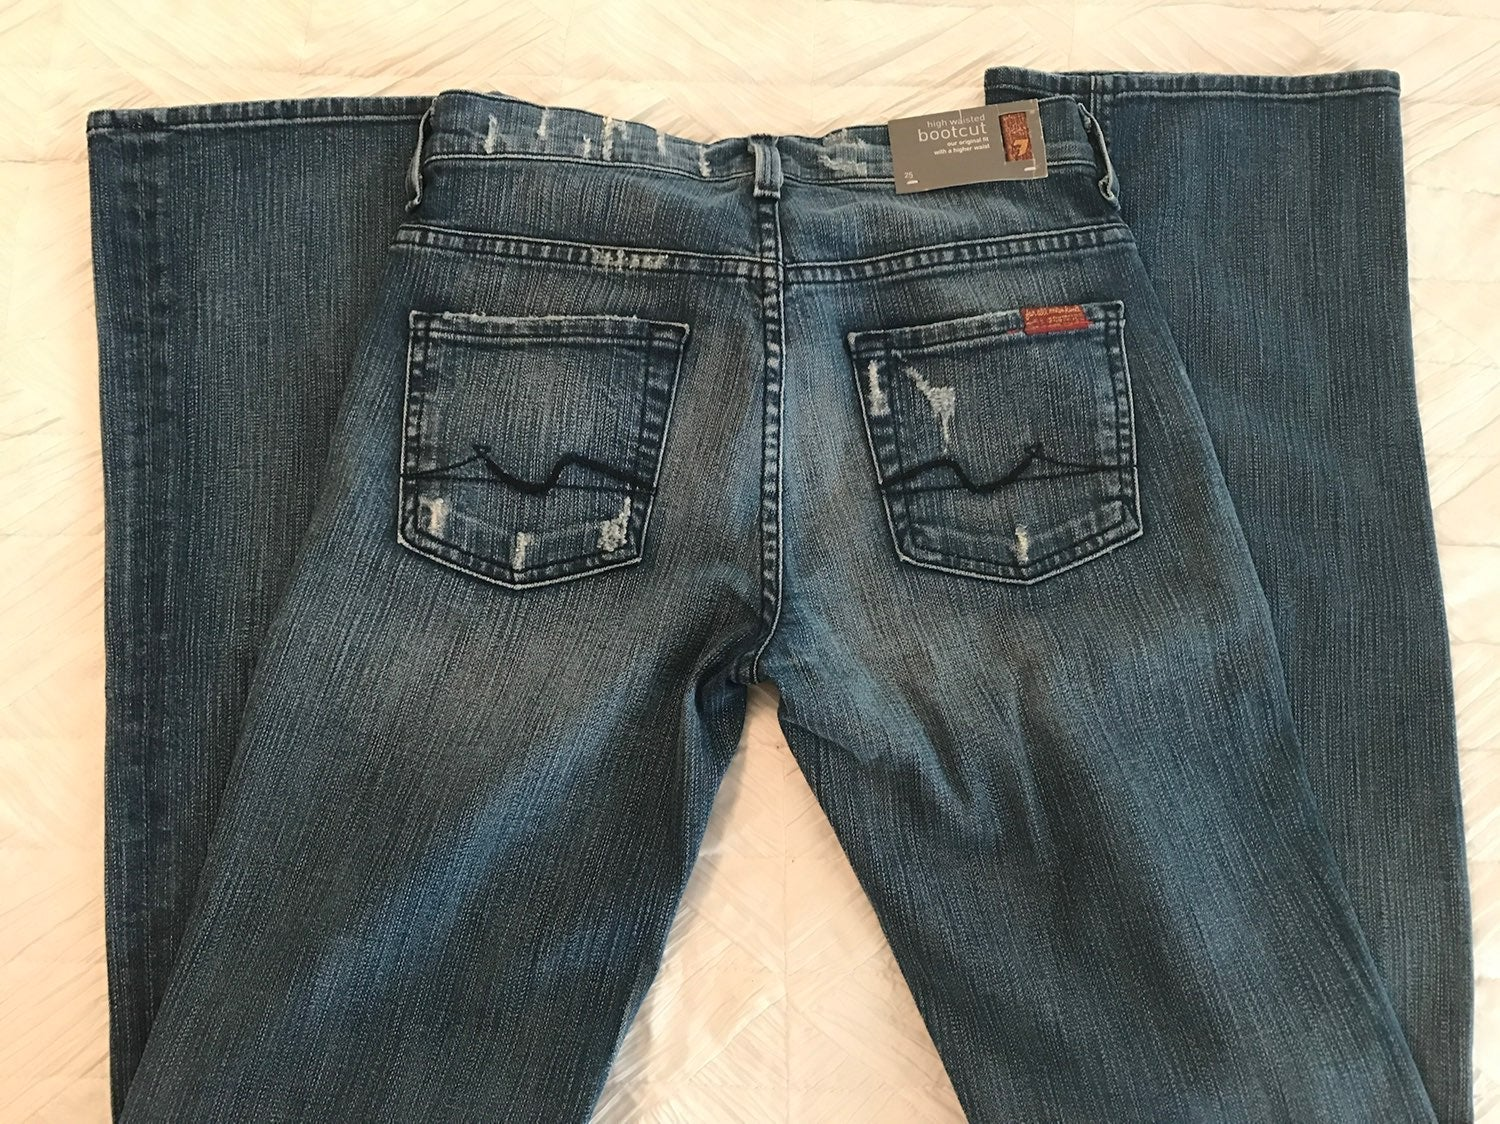 NWT: 7 for all mankind High Waisted Jean